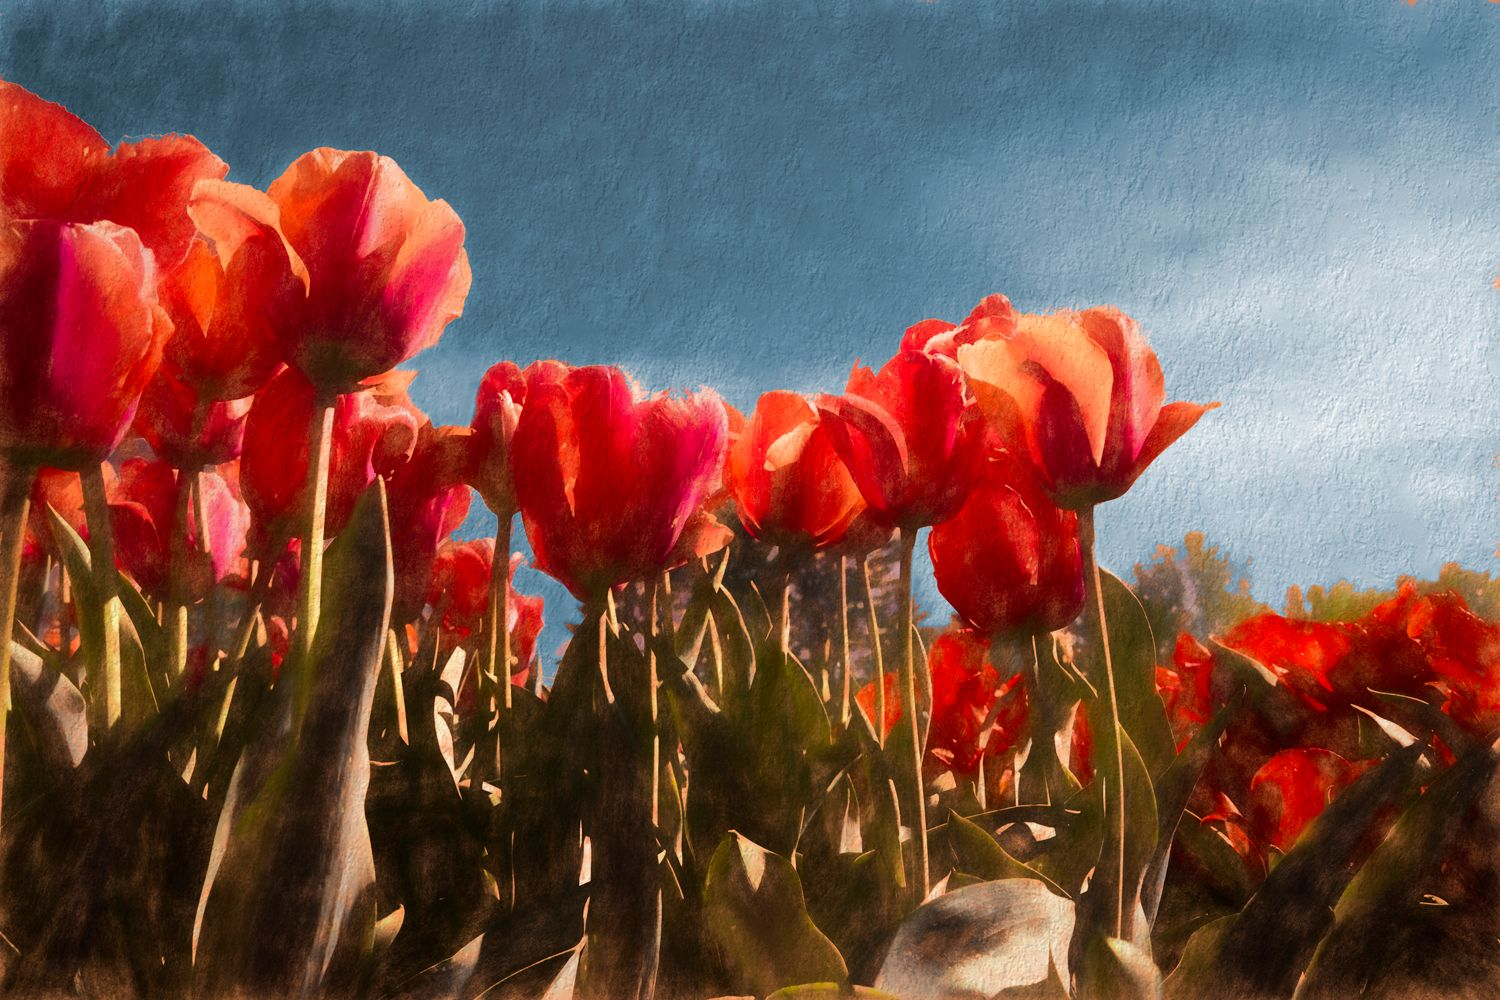 Red Tulips5 tz-rich blue-web.jpg